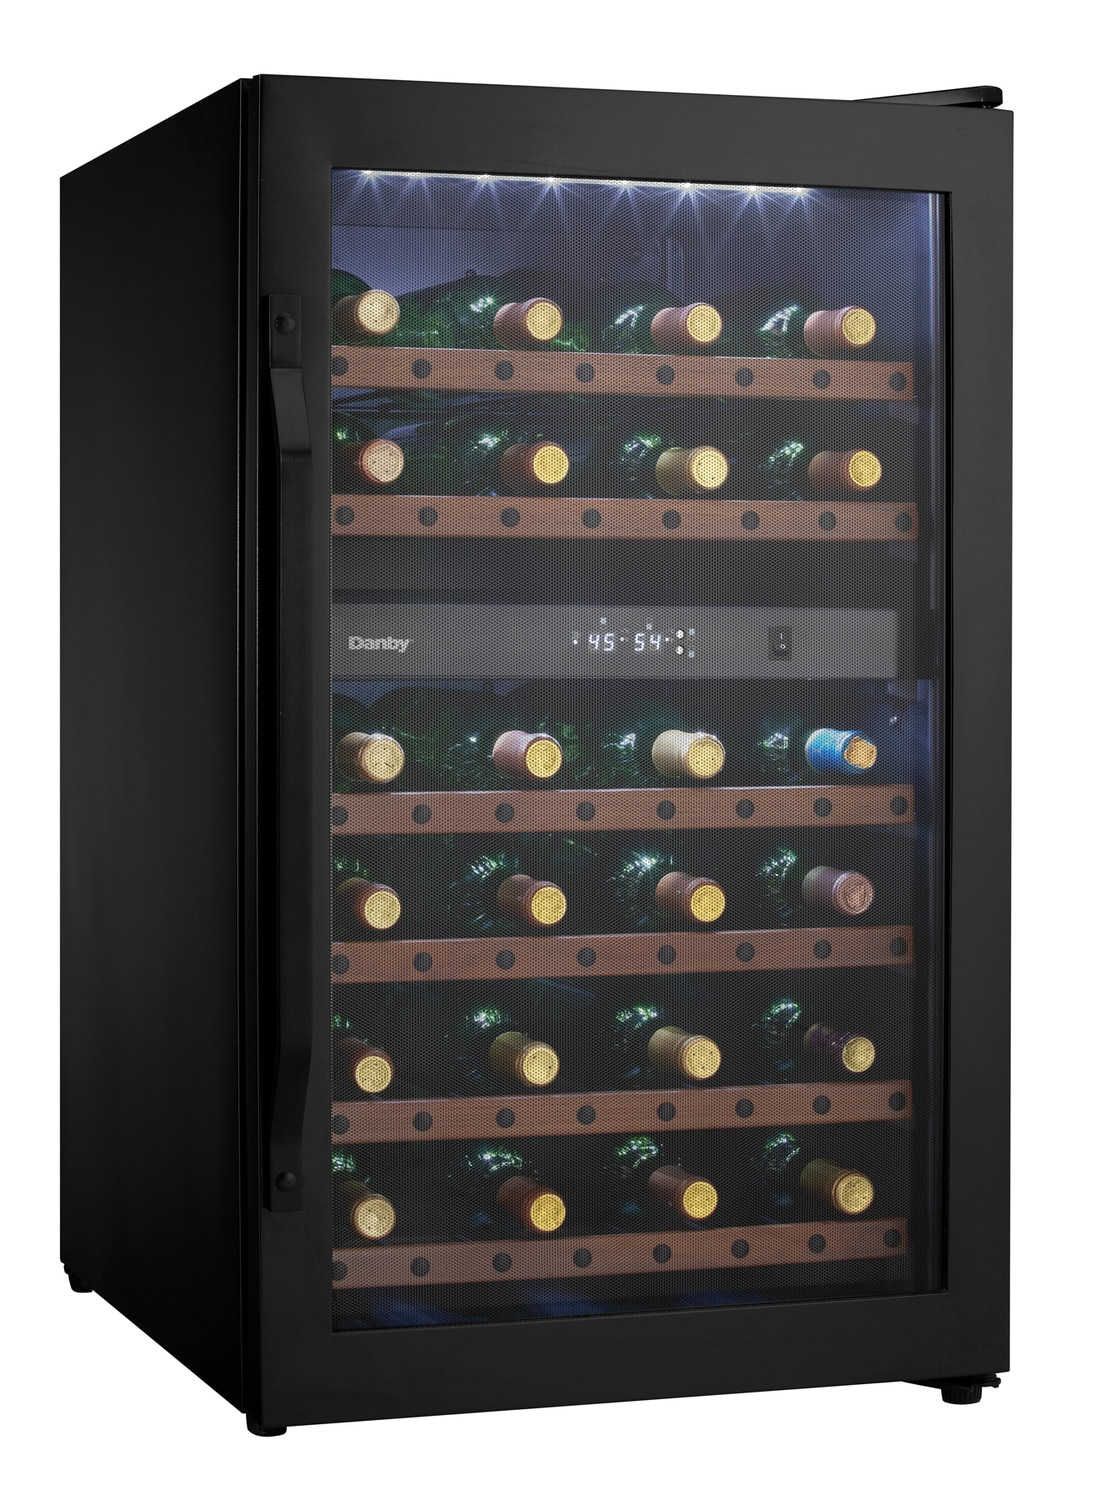 Refrigerators and Freezers - Danby Black Dual-Zone Wine Cooler (4 Cu. Ft.) - DWC040A2BDB